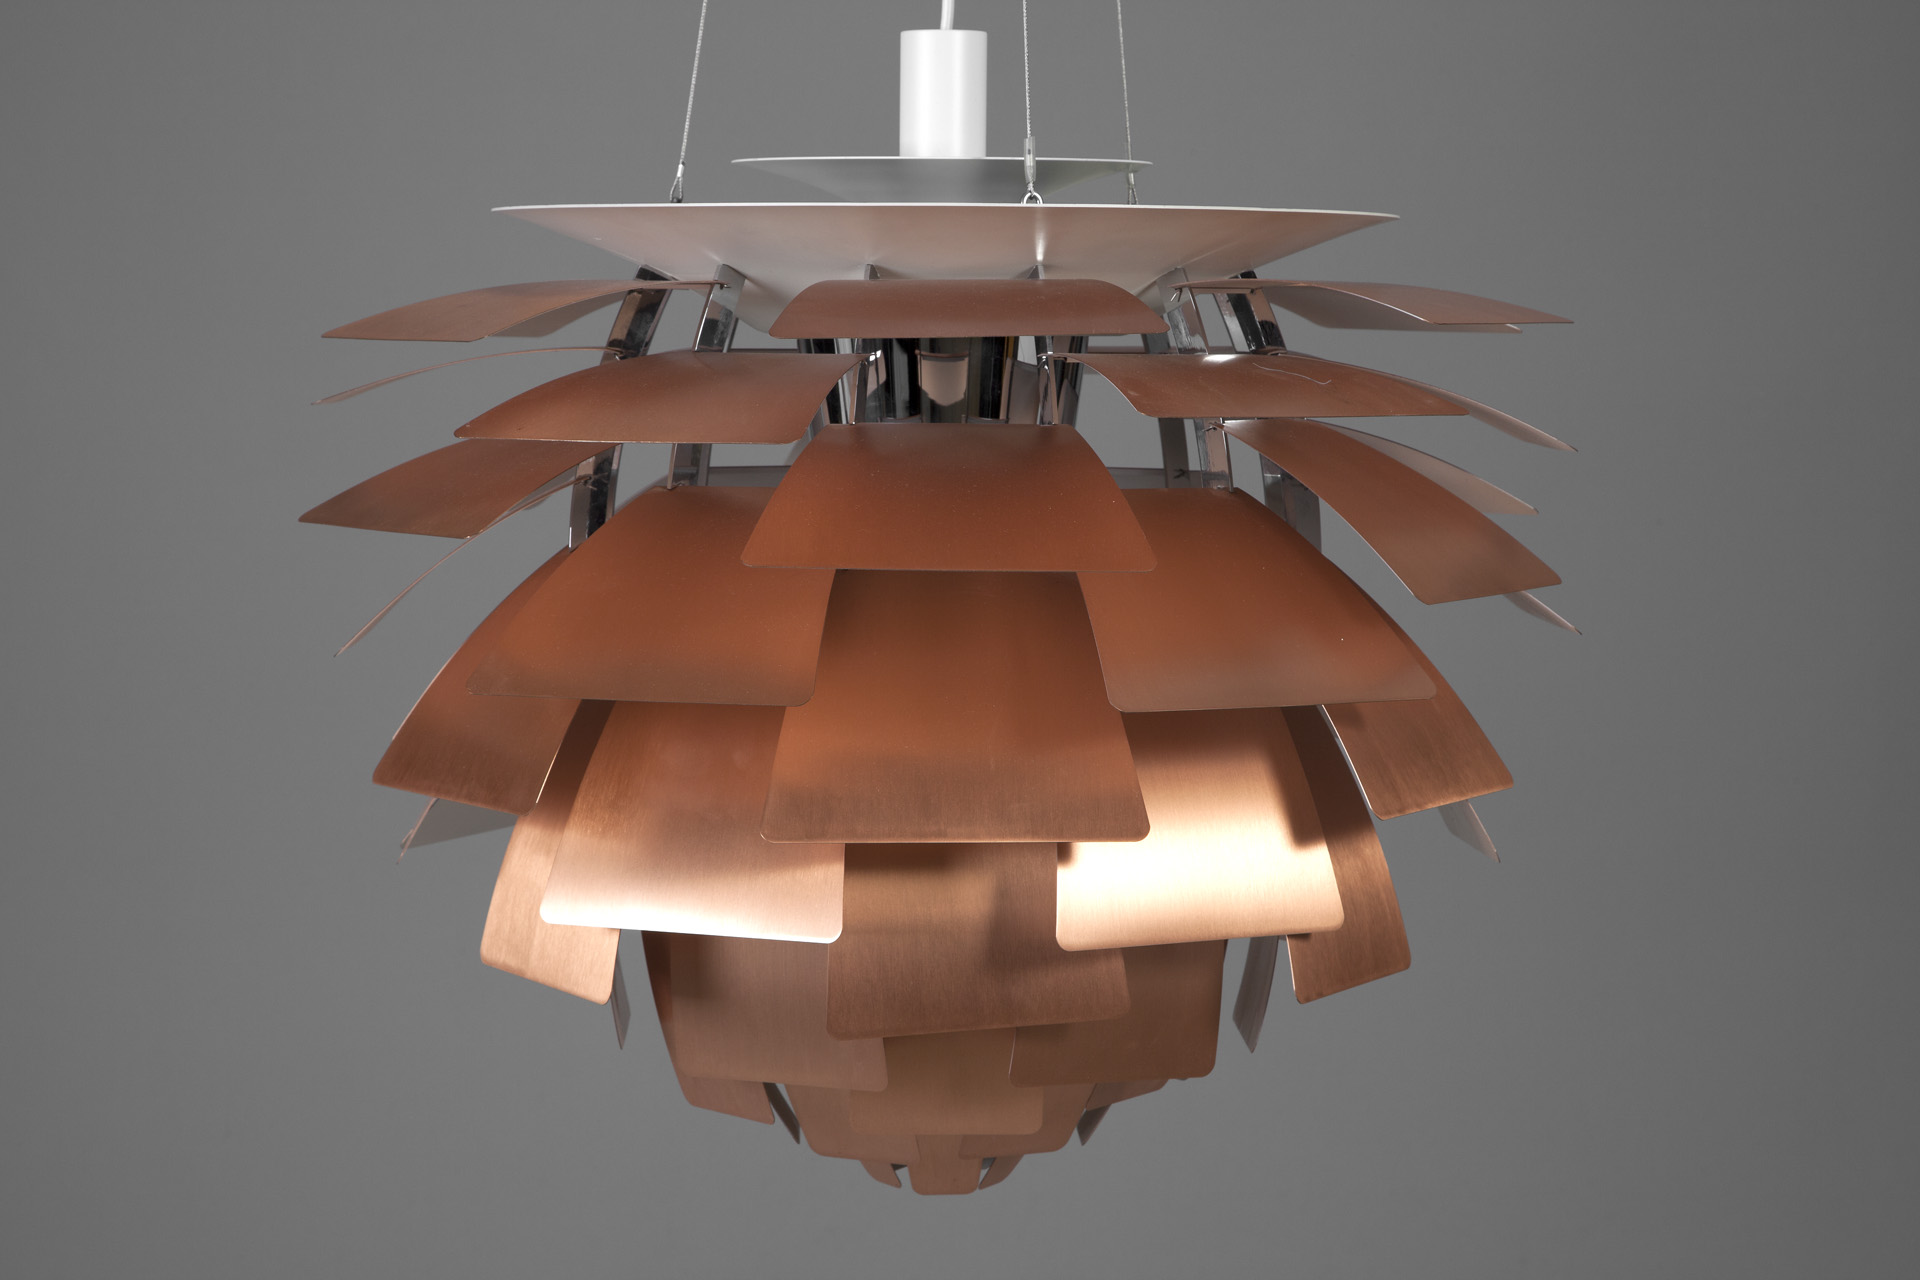 jacksons poul henningsen artichoke ceiling lamp poul henningsen. Black Bedroom Furniture Sets. Home Design Ideas